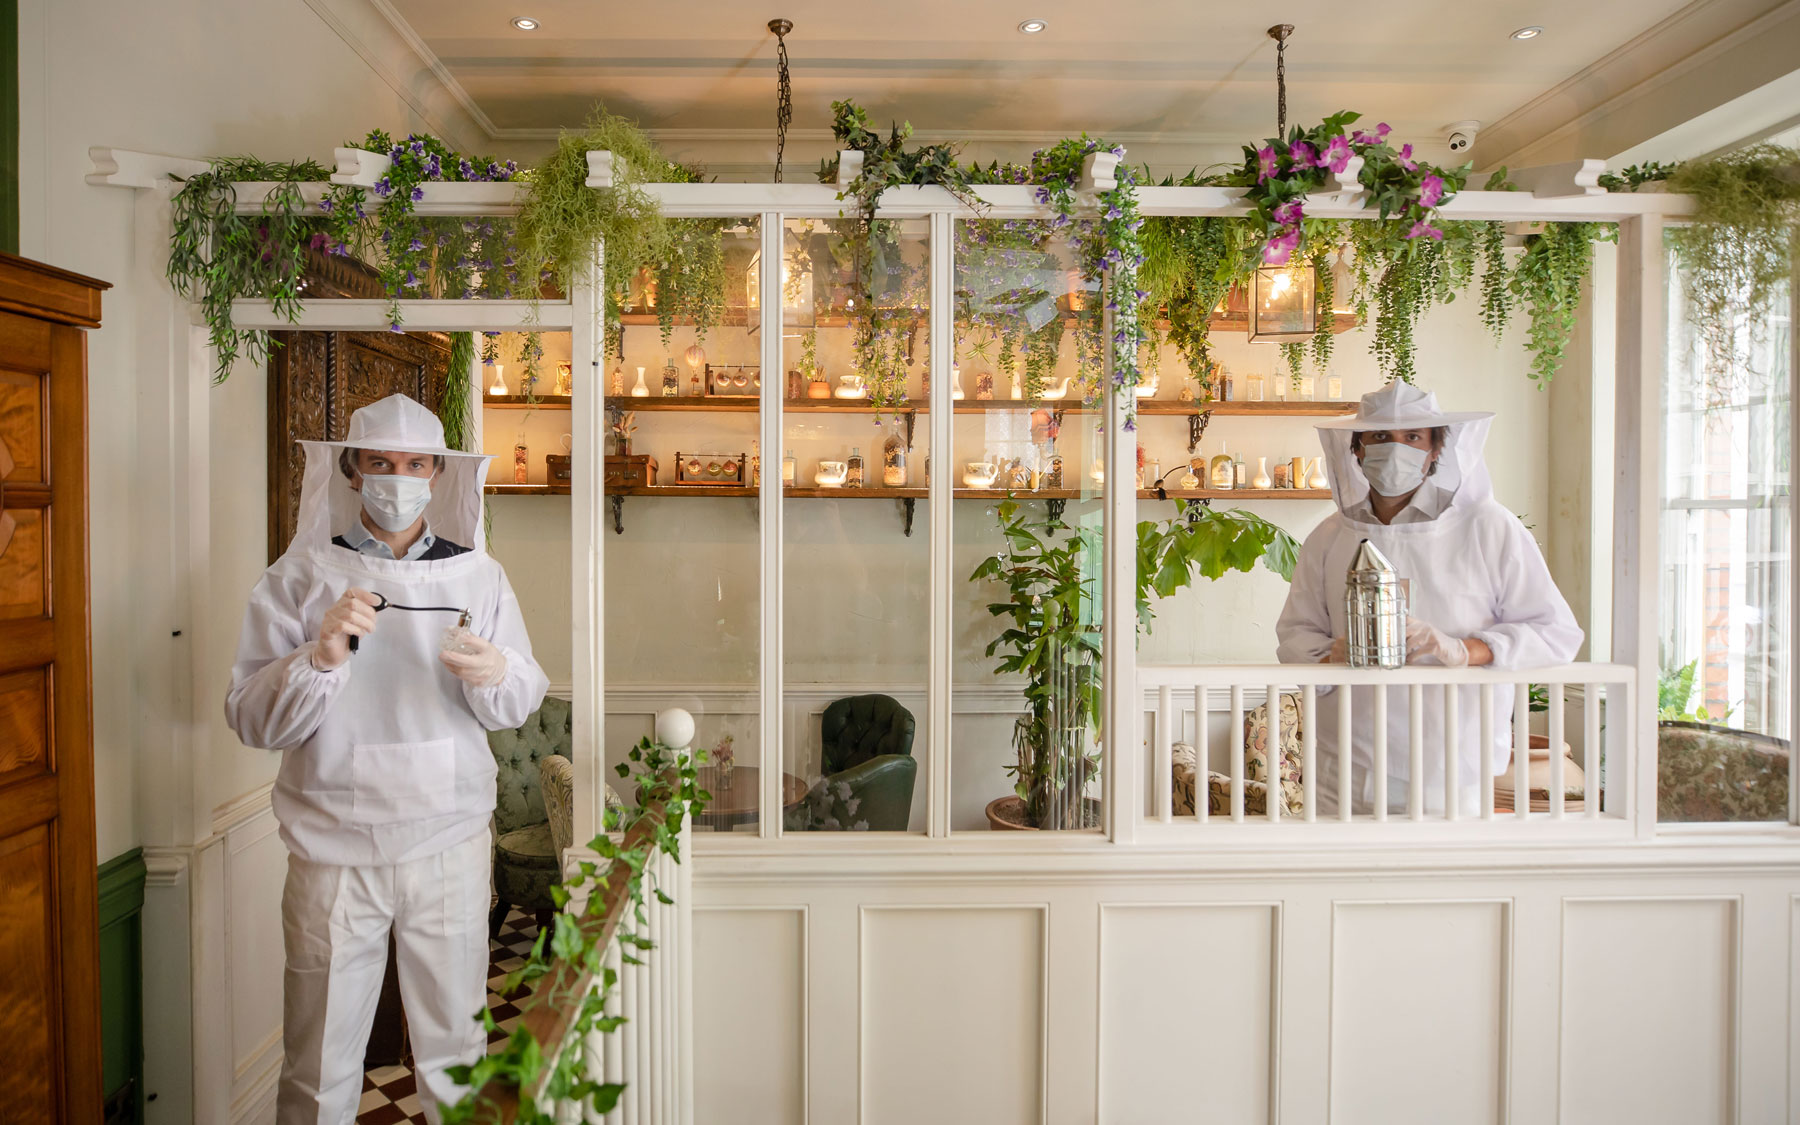 Mr Fogg's House of Botanicals staff wearing beekeeper suits